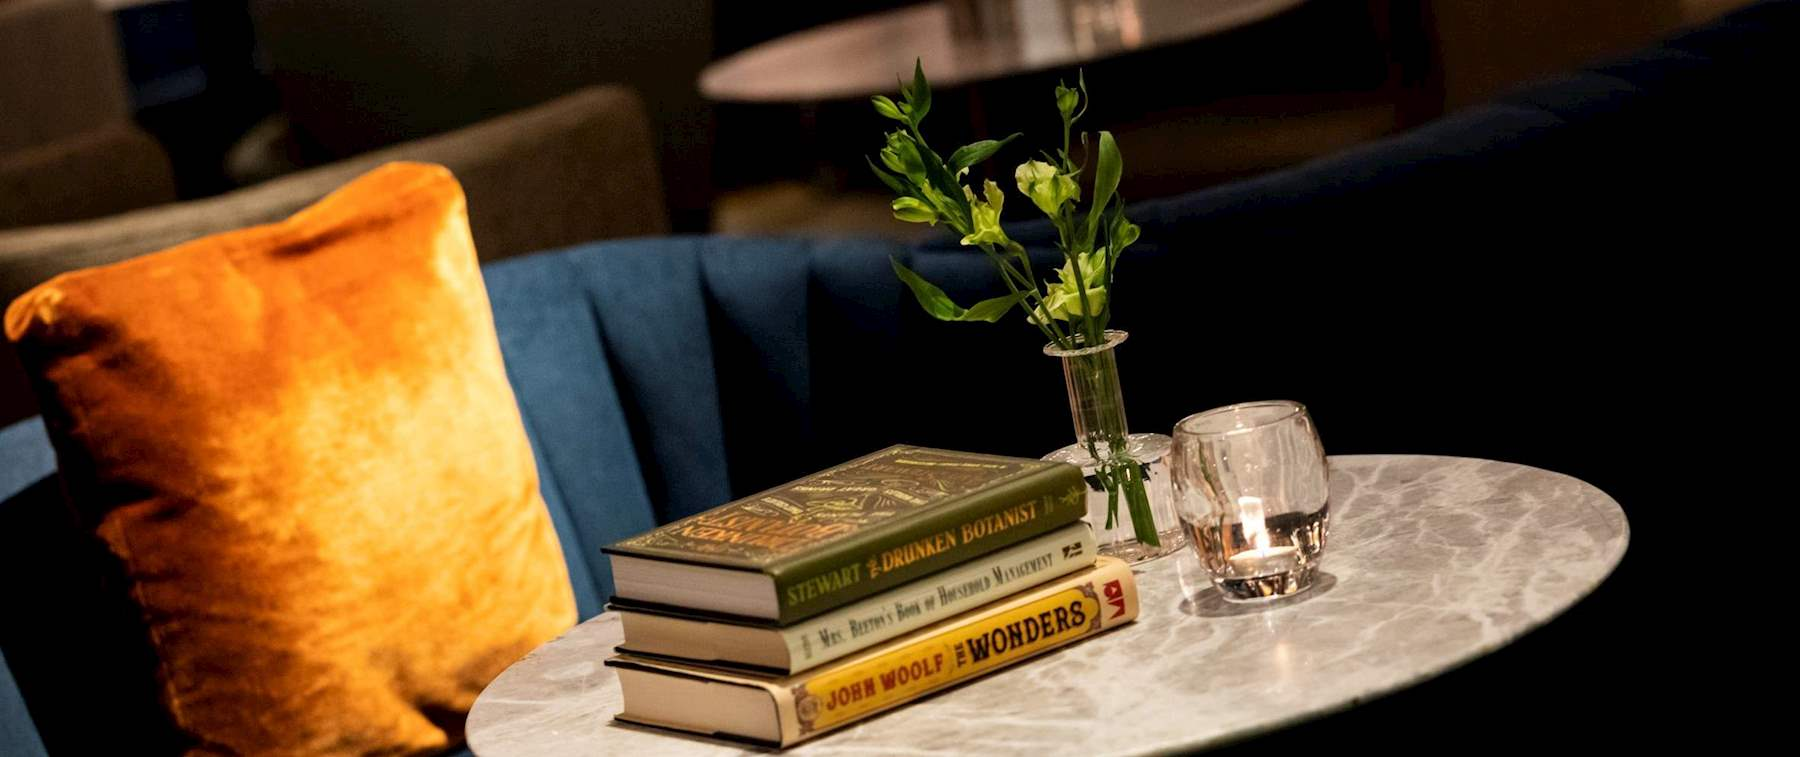 King Cross' new dynamic bar and all day dining spot